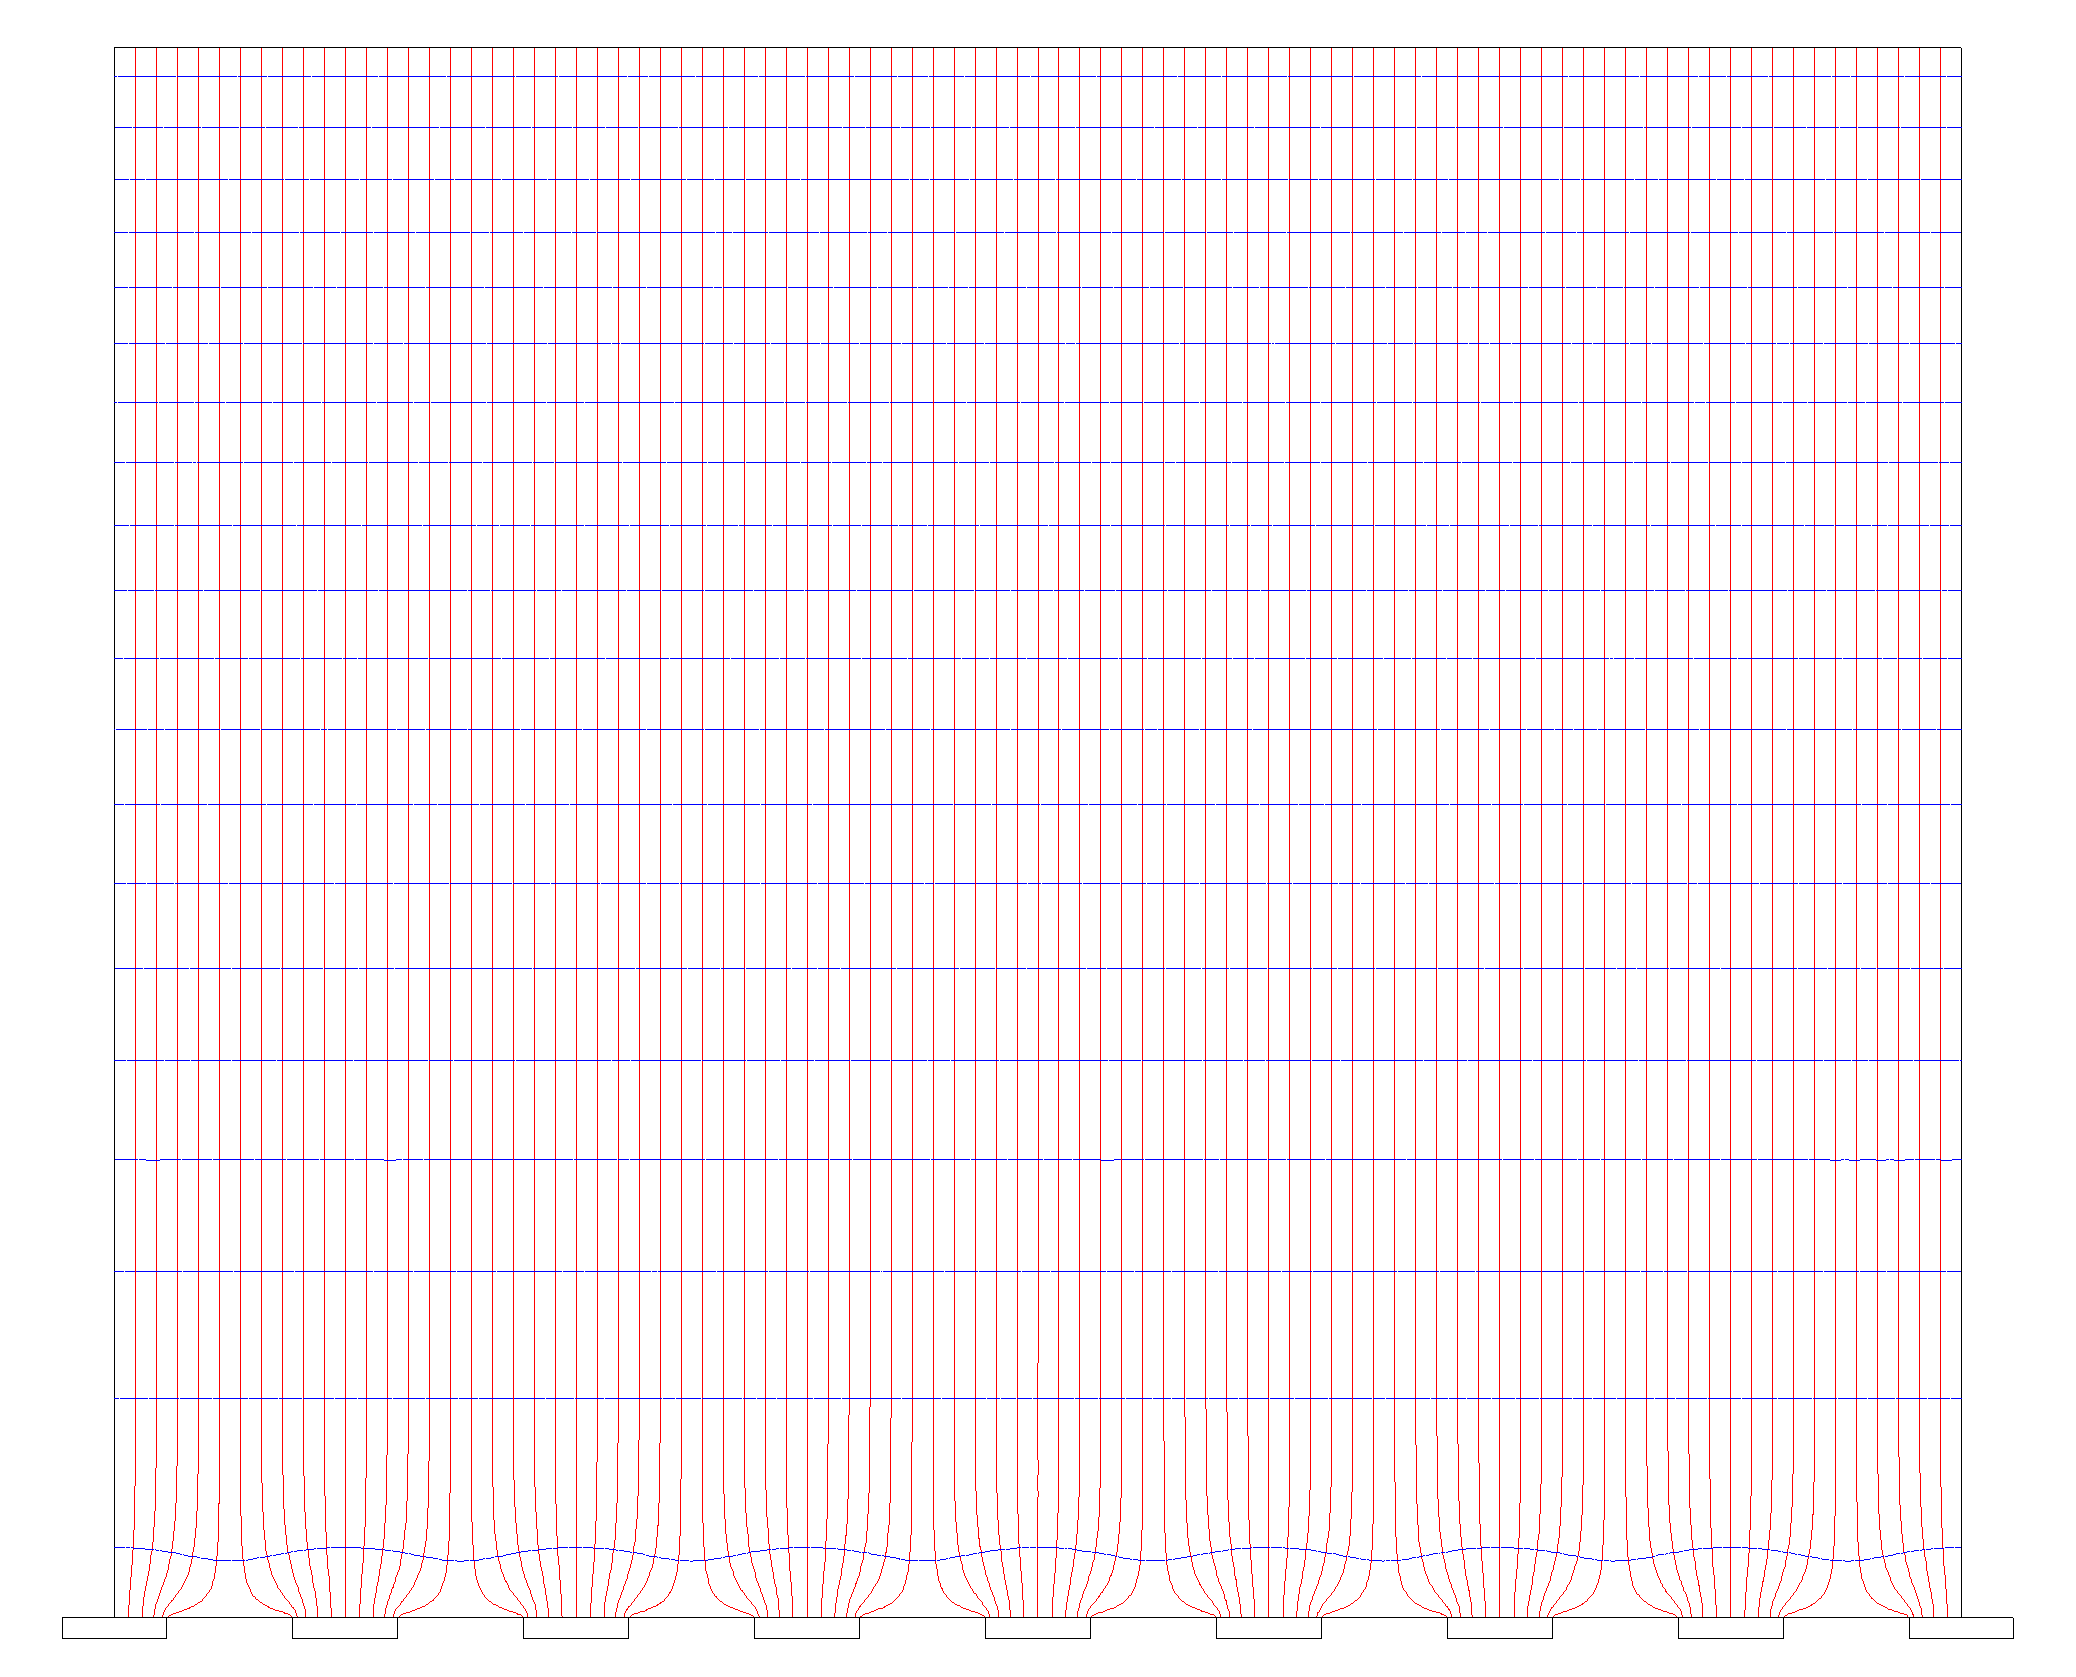 3 Results Figure 3.1 Electric field lines (red, vertical) and electric potential (blue, horizontal) for a doped CdTe sensor with the standard setup parameters.